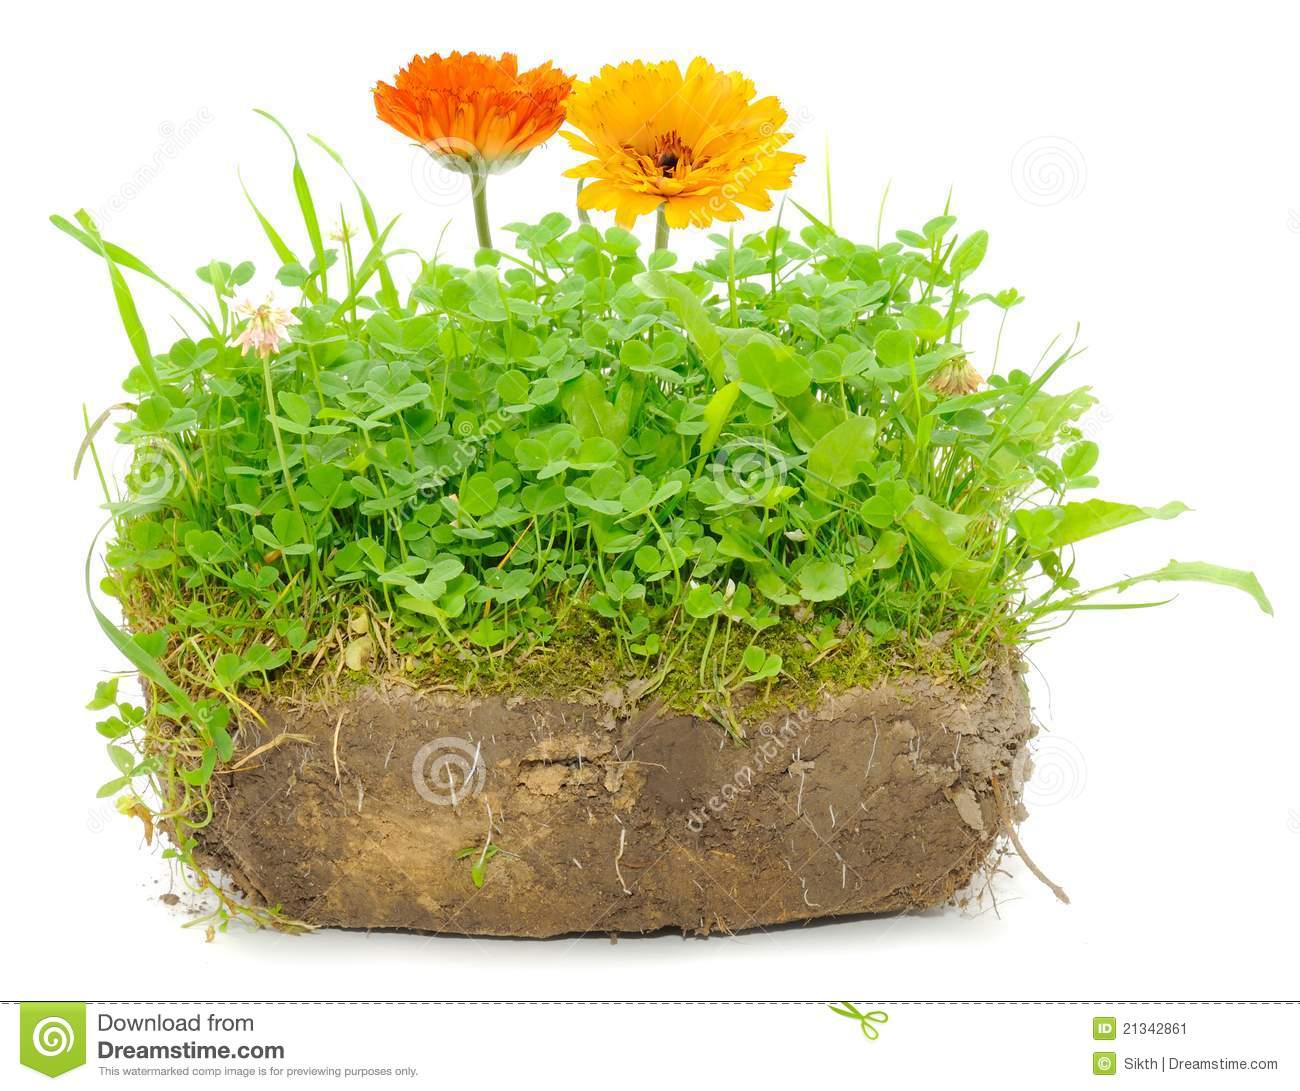 Green plants and calendula flowers in soil stock image for Soil and green